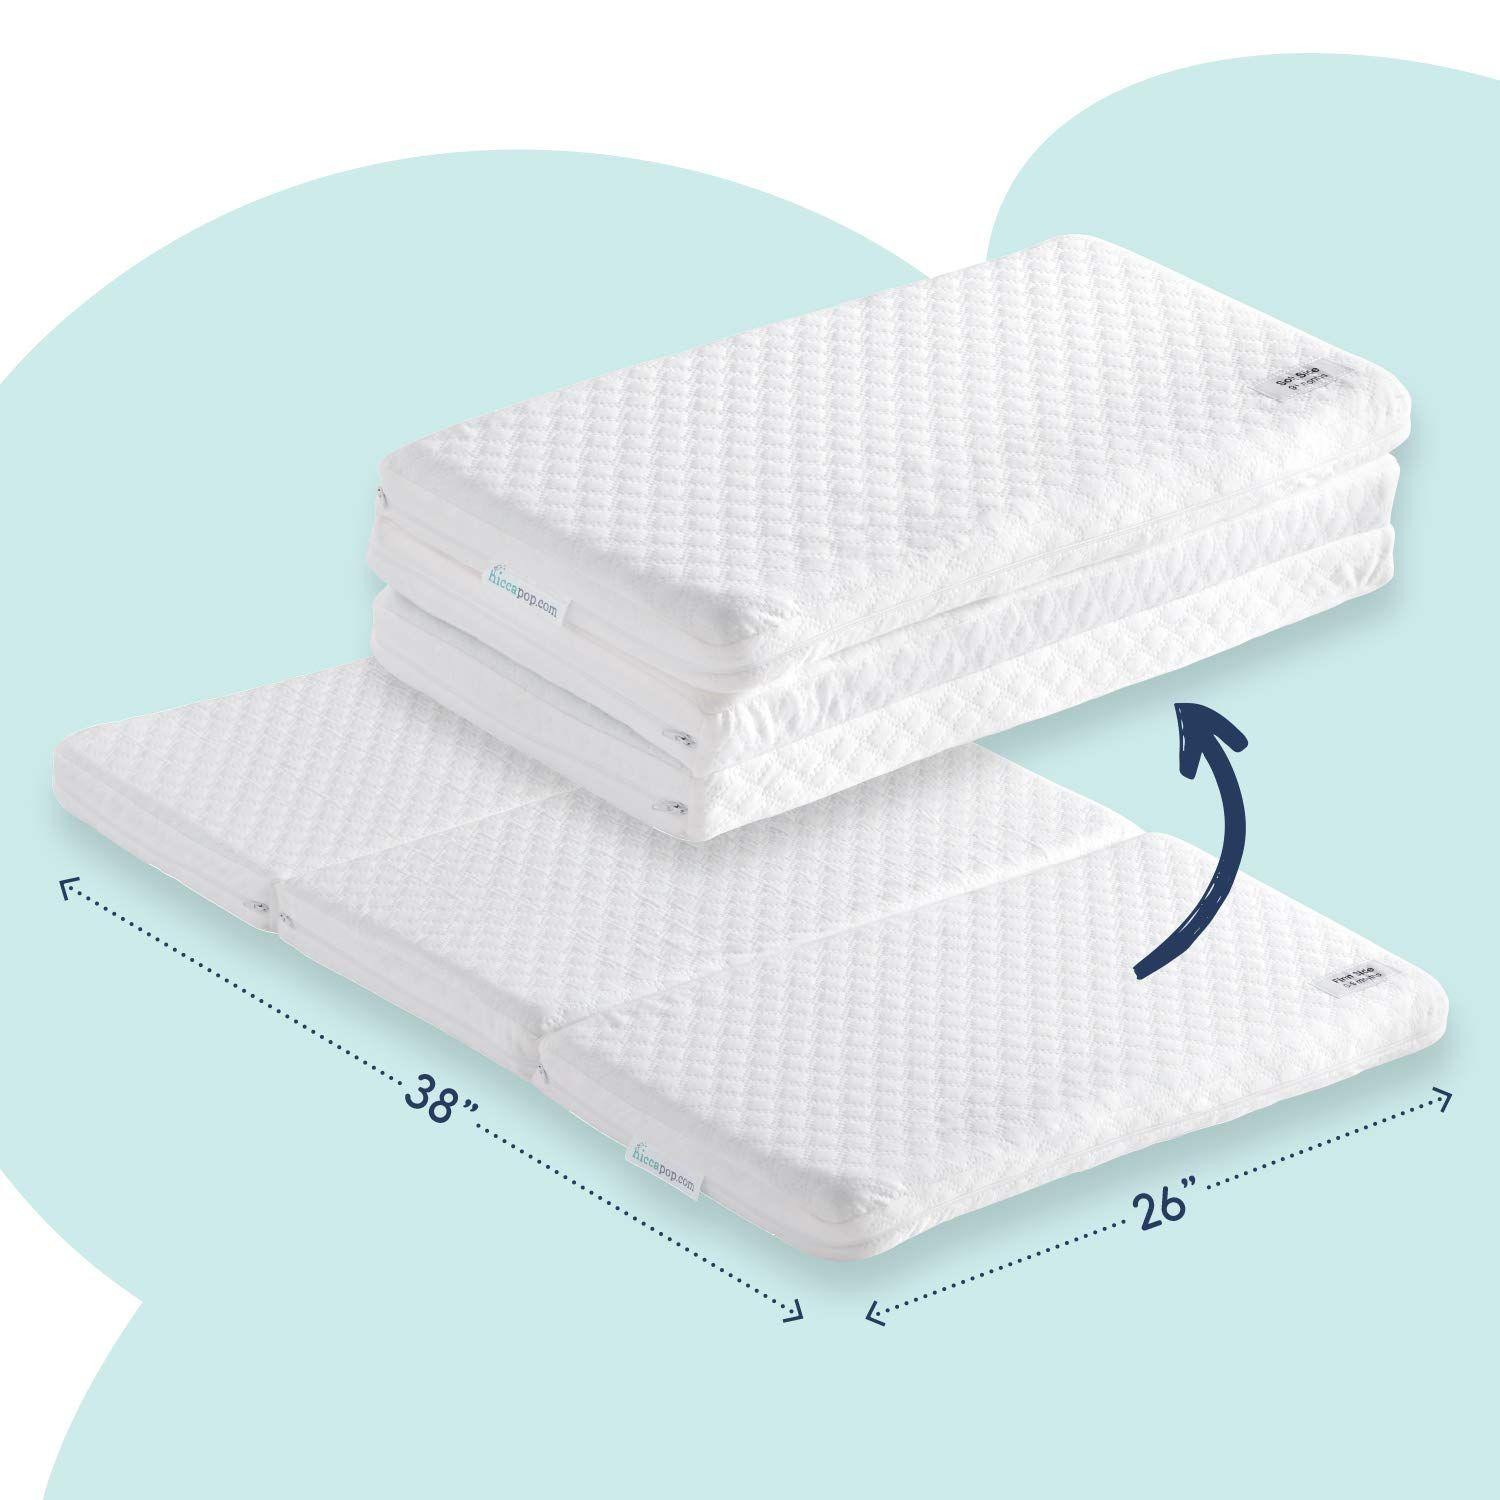 Trifold Pack n Play Mattress Pad with Firm (for Babies